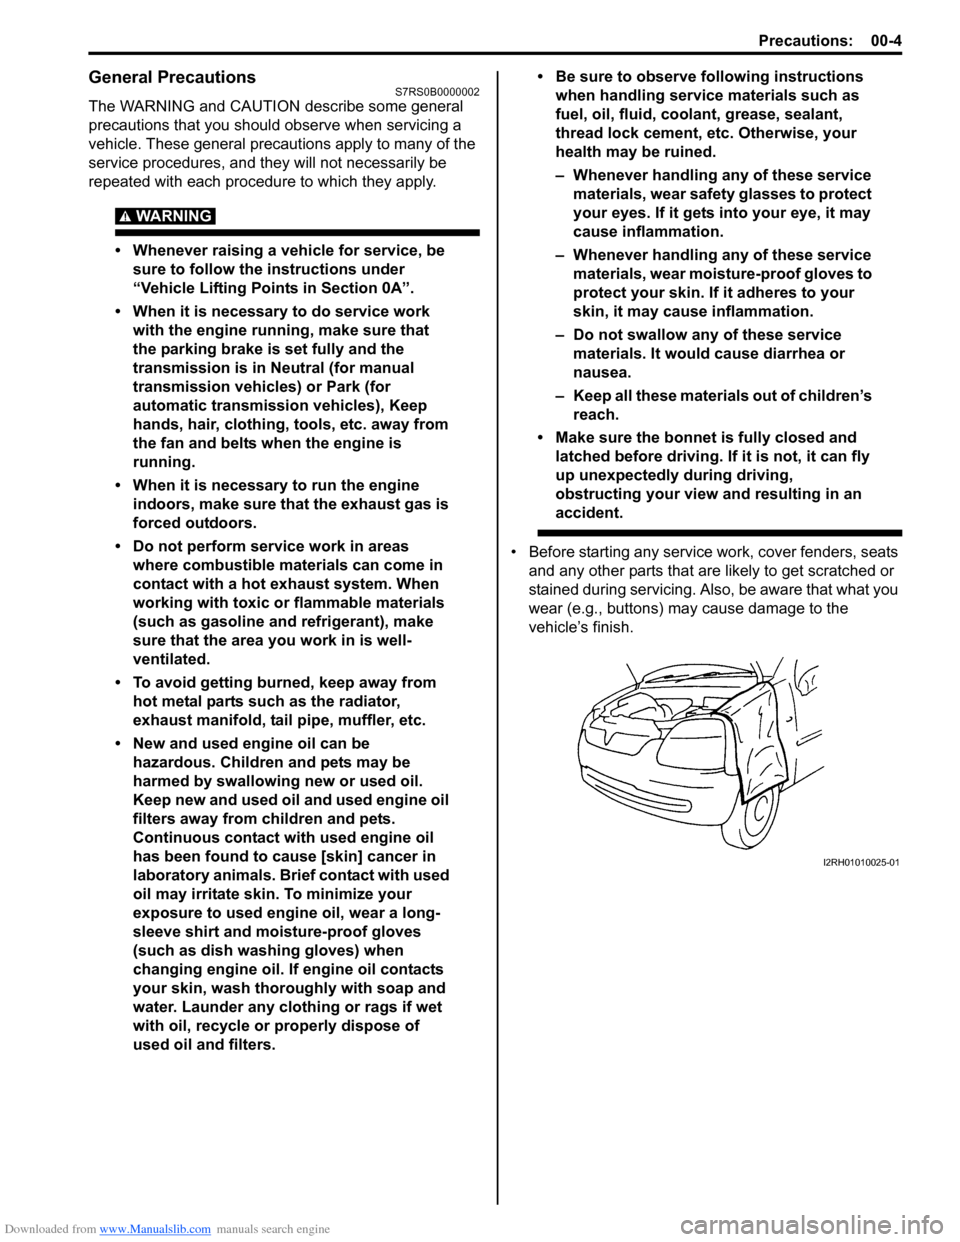 SUZUKI SWIFT 2008 2.G Service Workshop Manual Downloaded from www.Manualslib.com manuals search engine Precautions: 00-4 General PrecautionsS7RS0B0000002 The WARNING and CAUTION describe some general  precautions that you should observe when serv